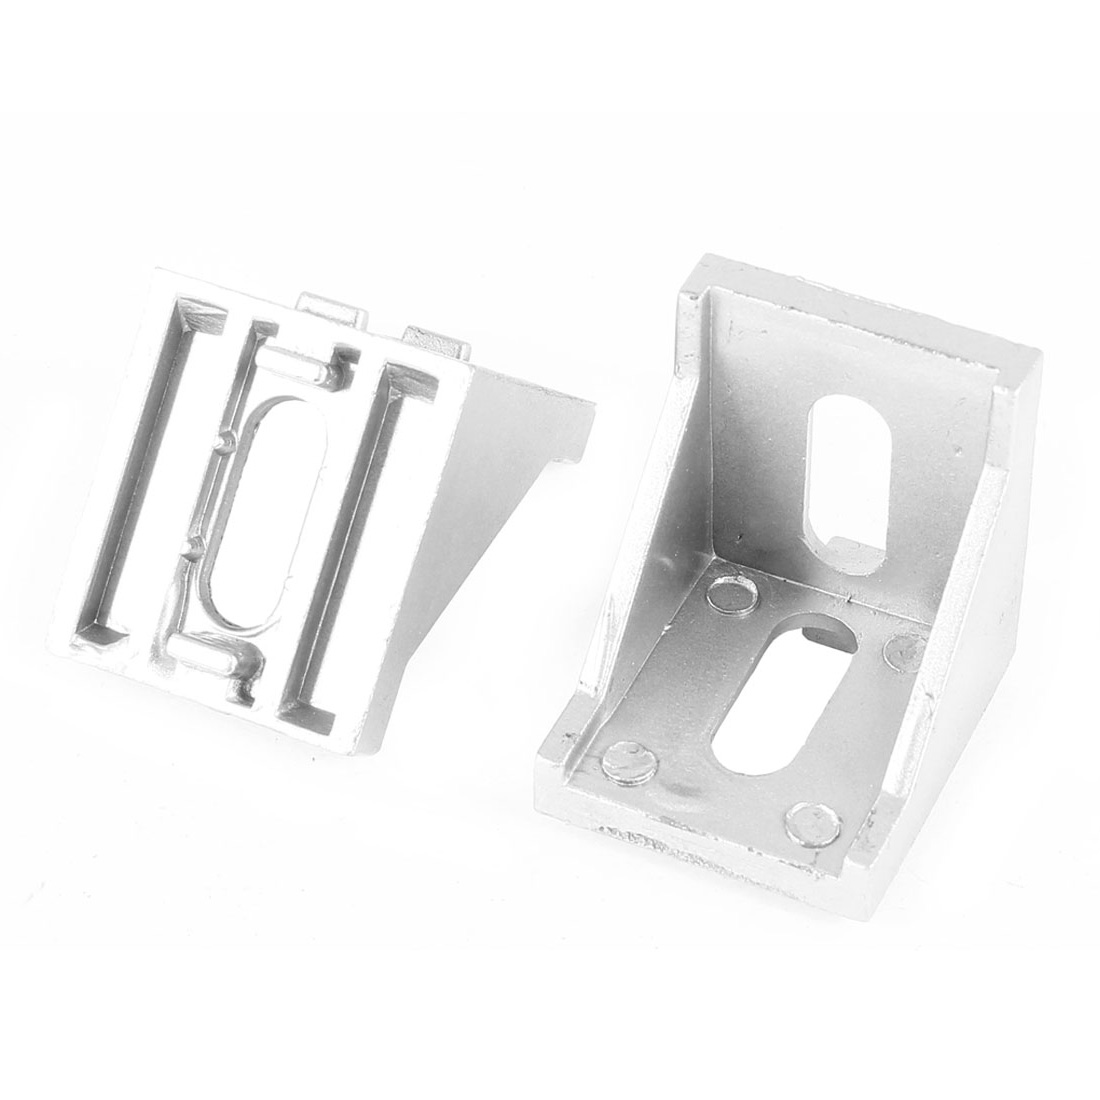 2 Pcs Silver Tone Metal 90 Degree Corner Angle Bracket 40mm x 40mm